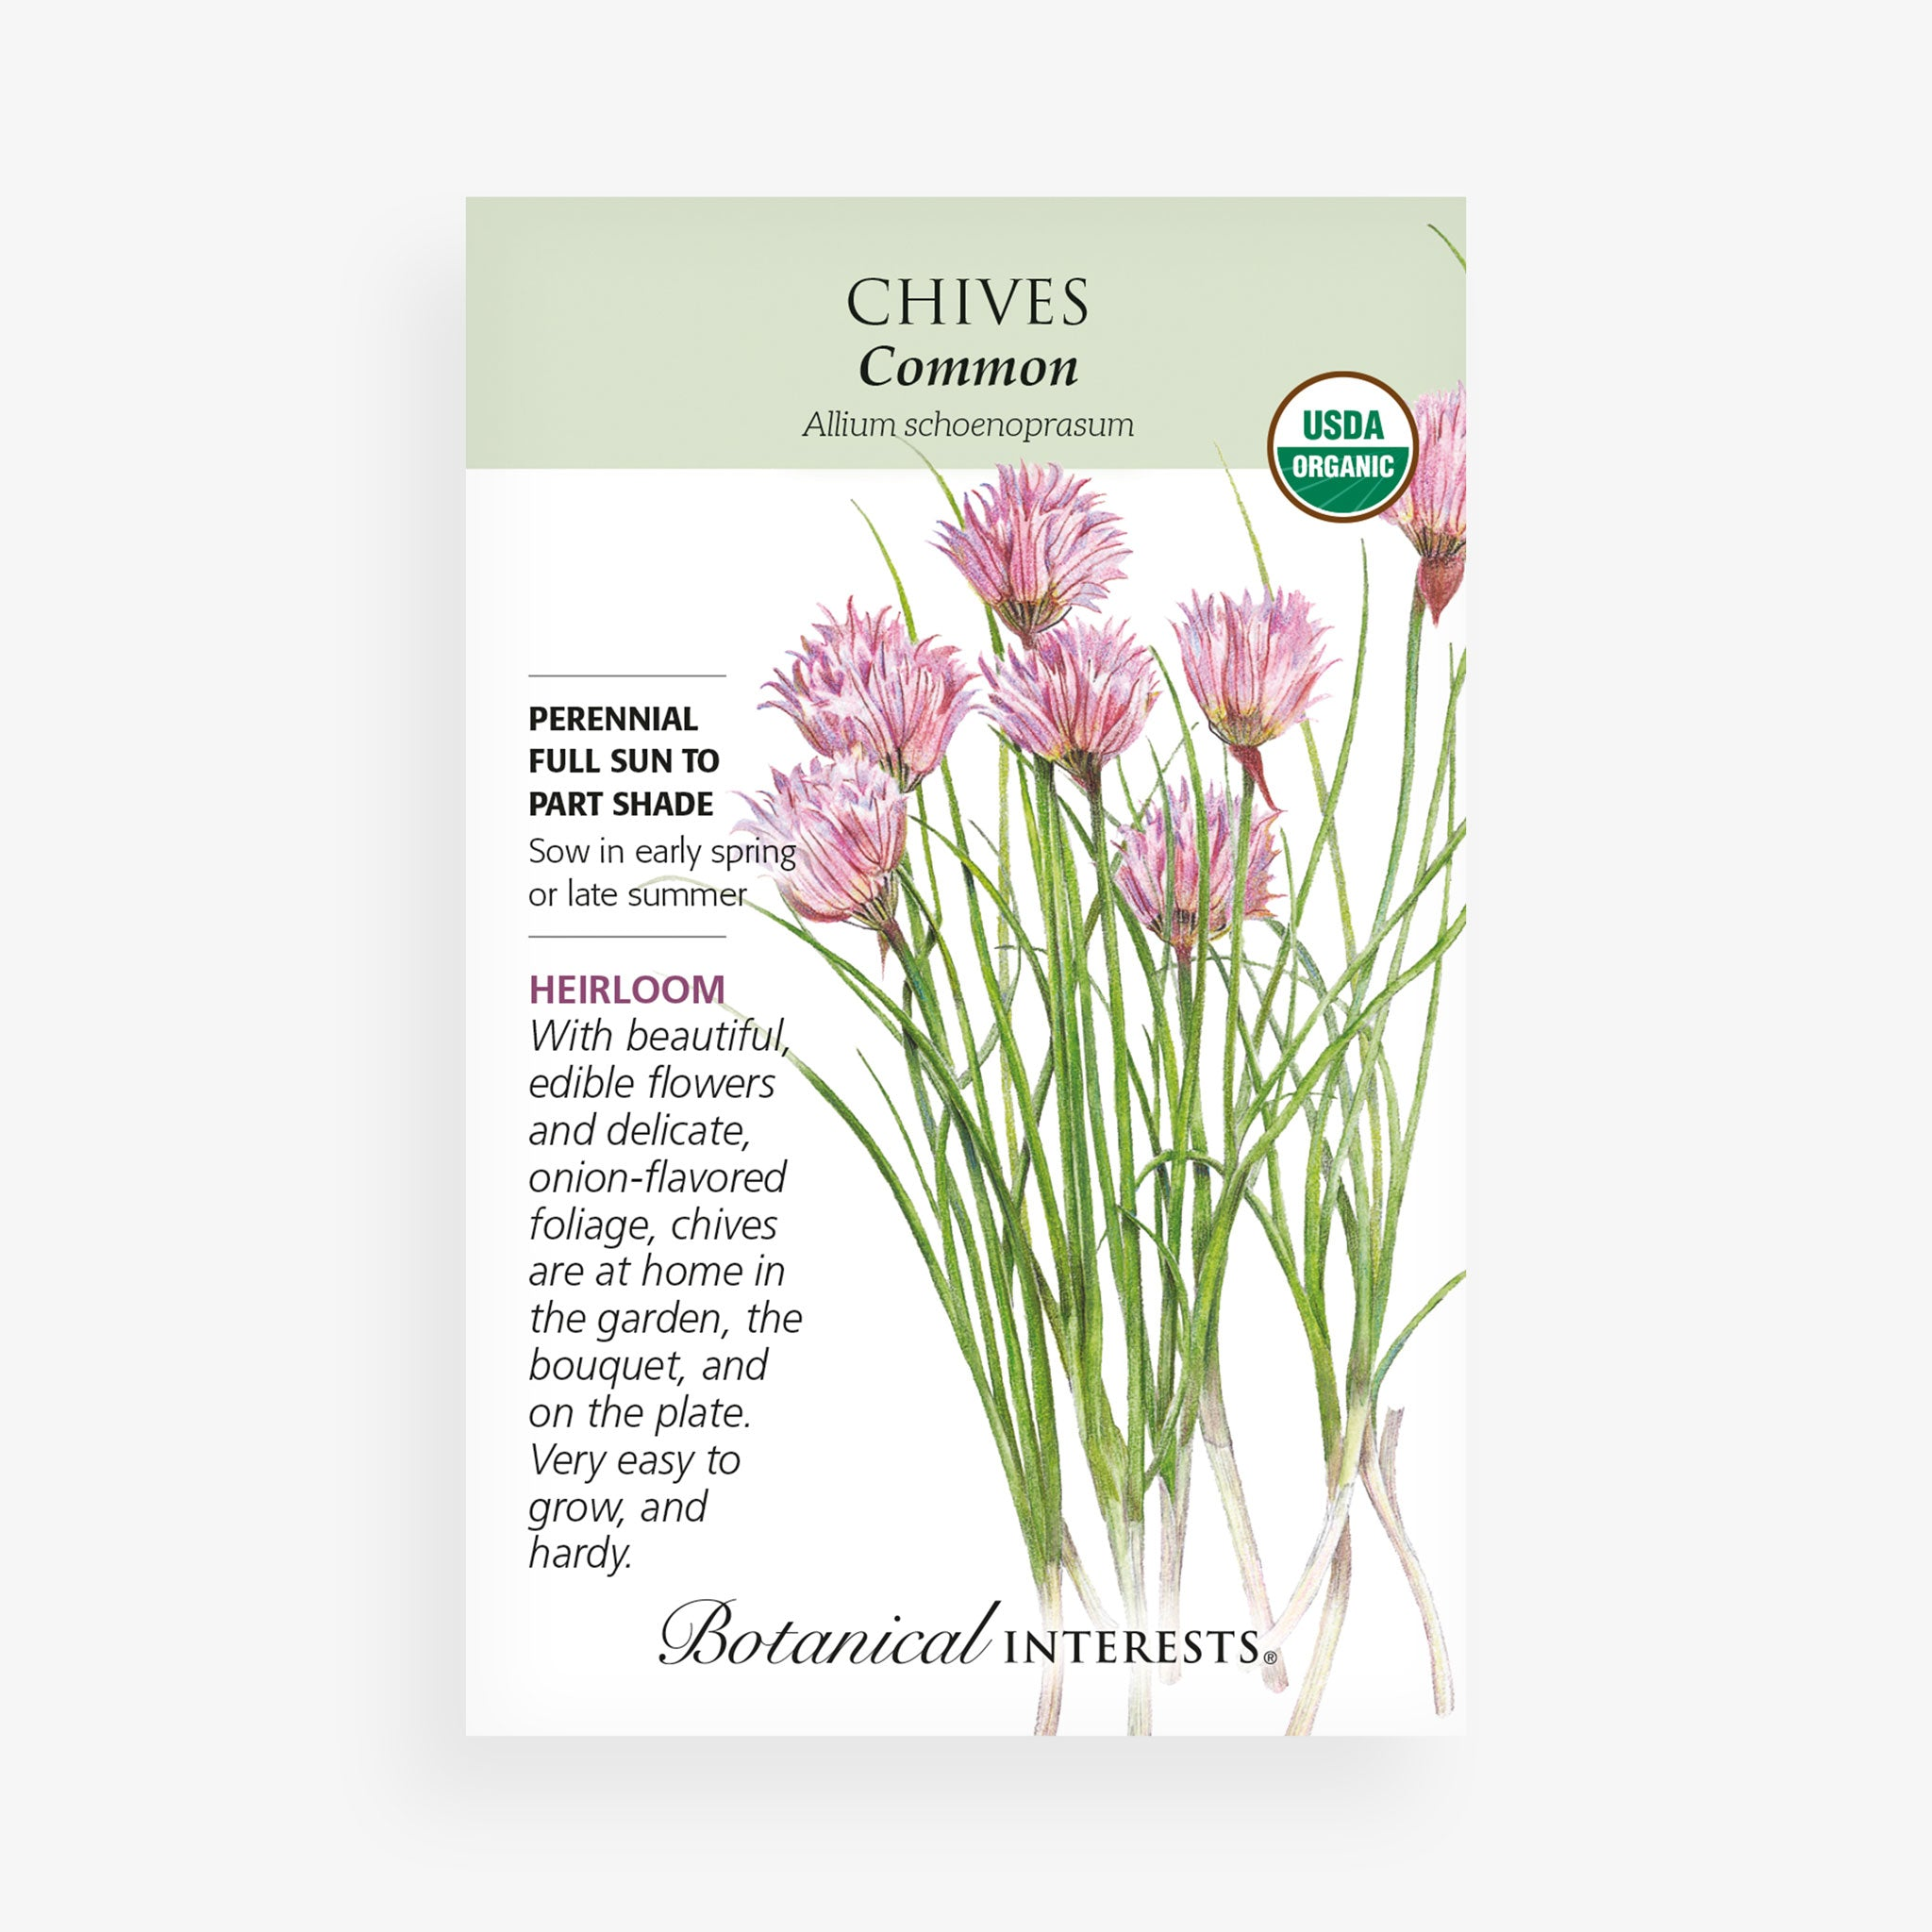 Common Chives Seed Packet